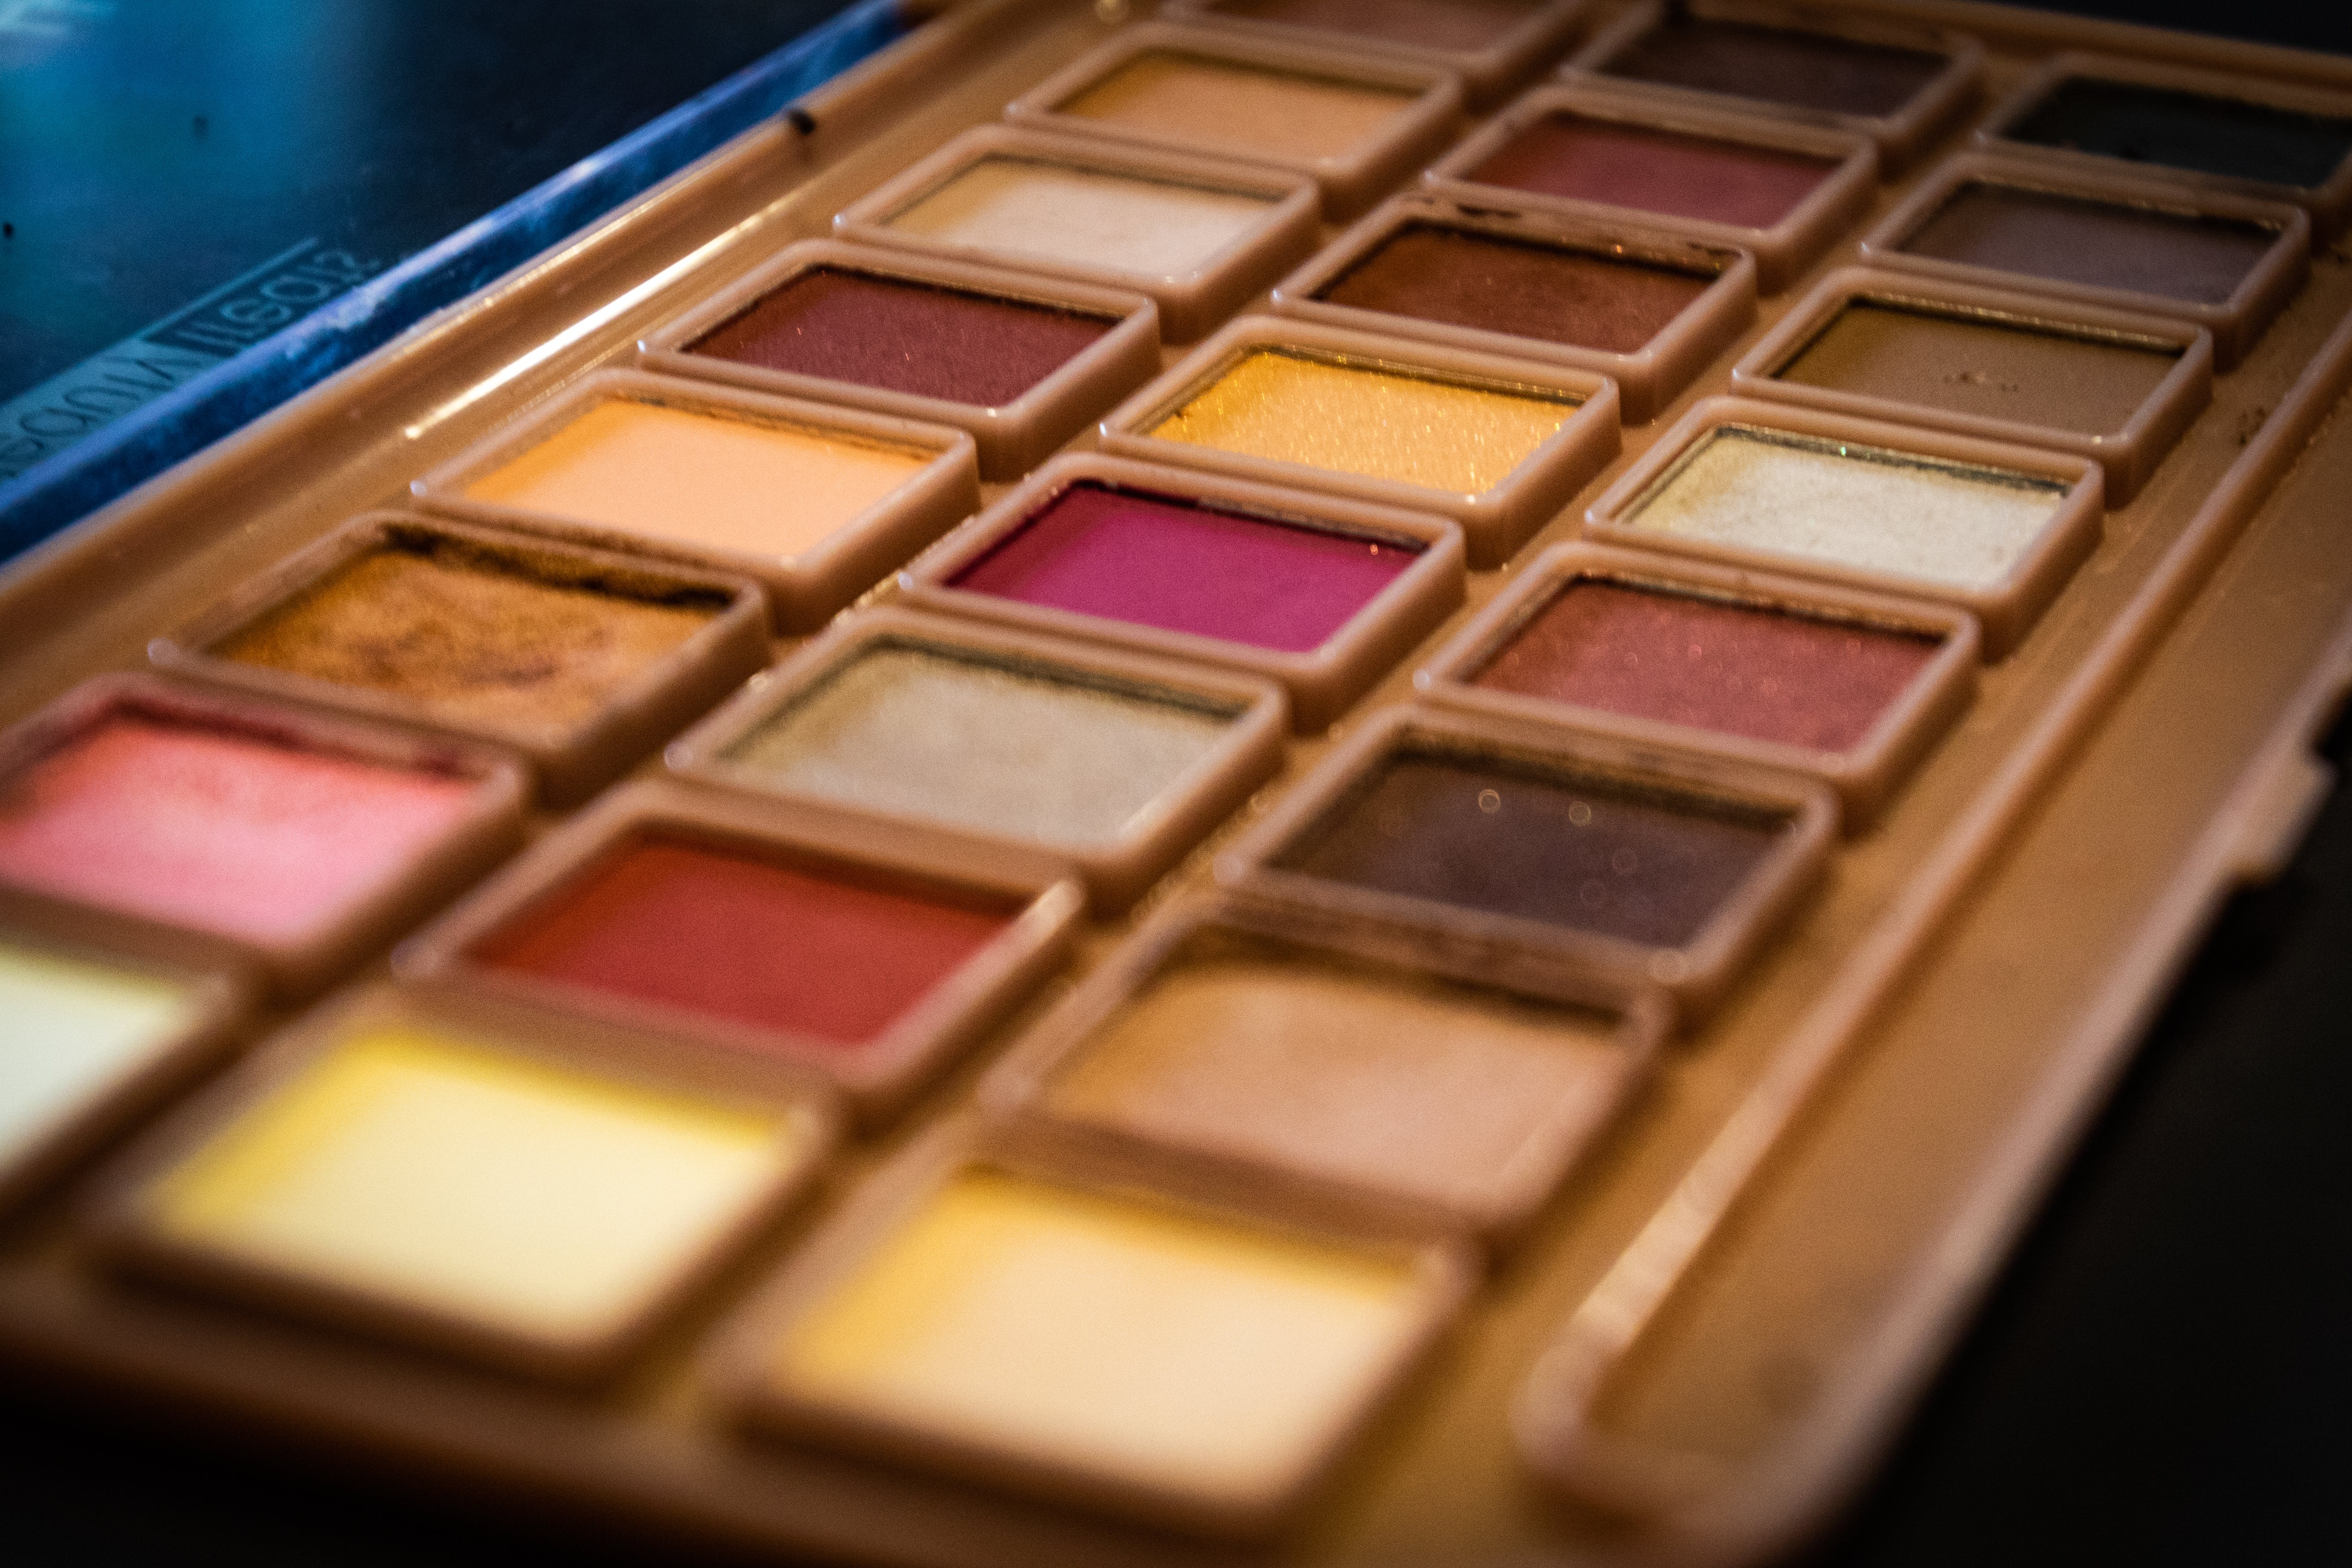 Depth of Field Photography of Makeup Palette